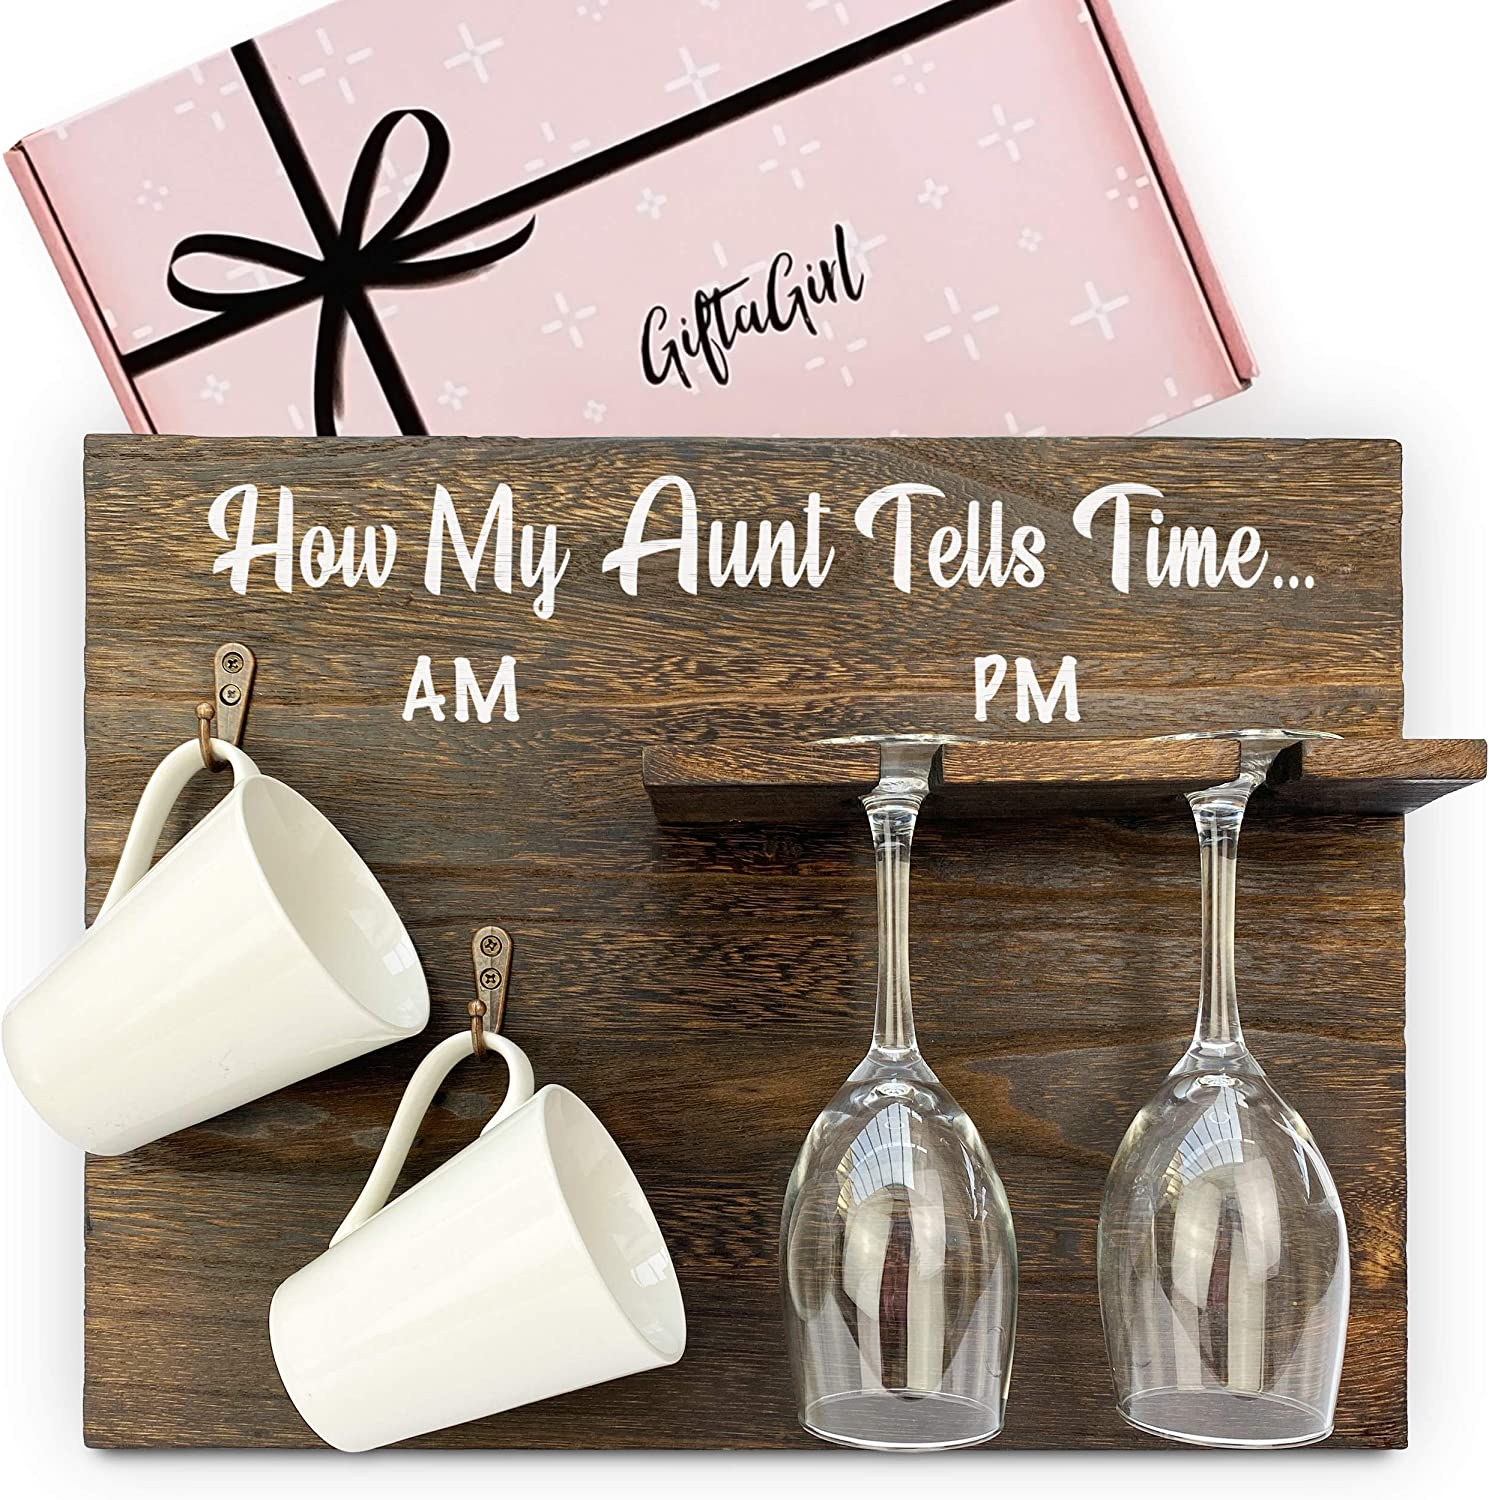 GIFTAGIRL Aunt Gifts from Niece or Aunt Gifts from Nephew - Wine Gifts for Women Like our How My Auntie Tells Time Wine Gift, make Ideal Aunt Gifts. Funny Wine Gifts make Best Aunt Ever Gifts for 2020